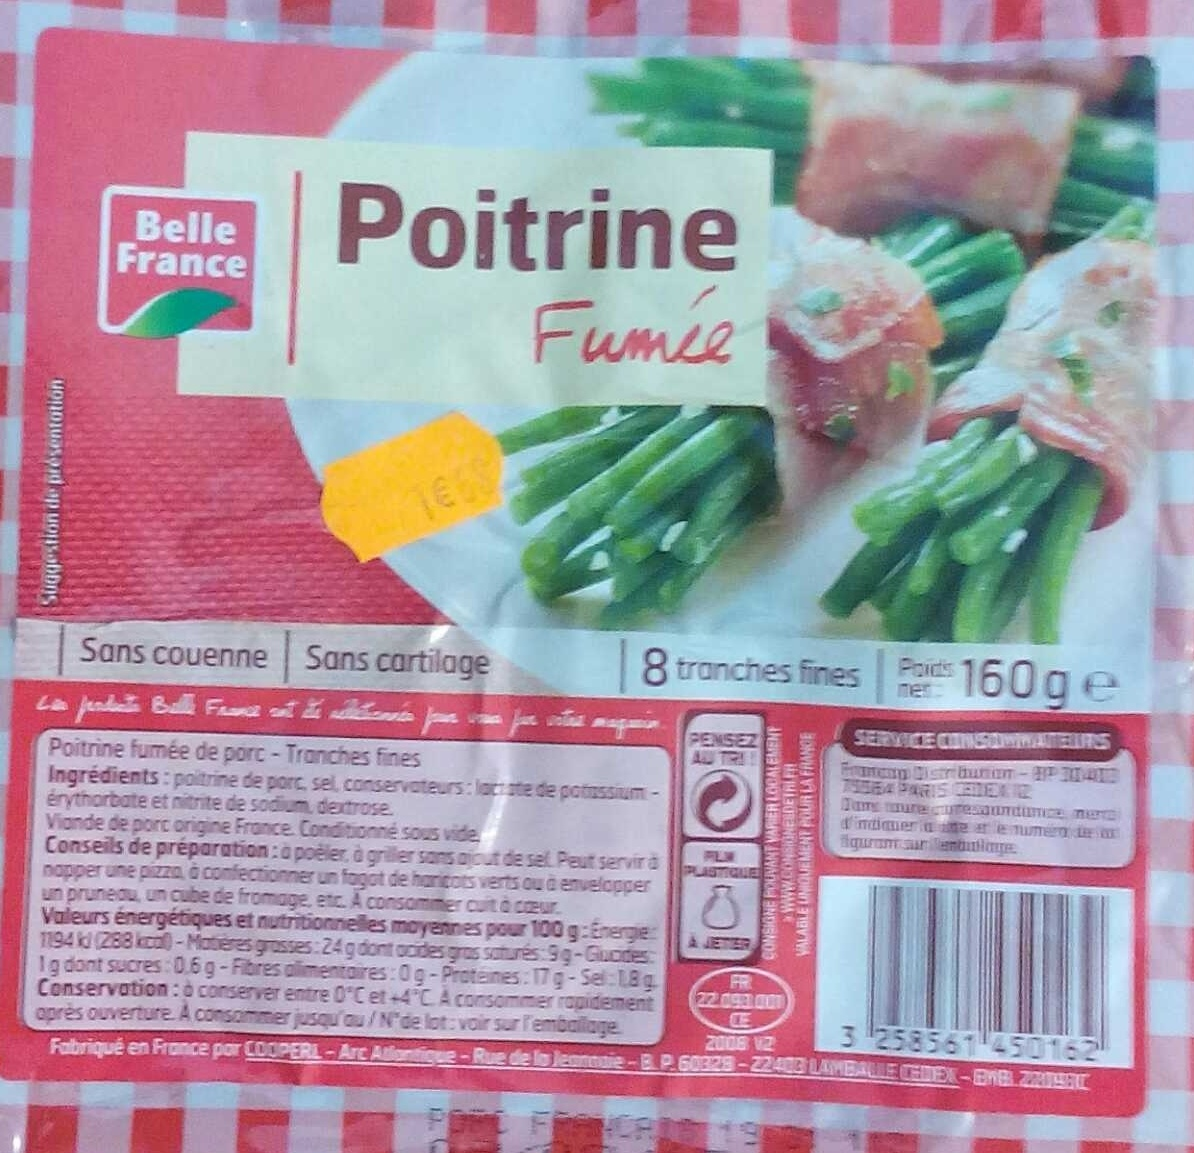 Poitrine Fumée (8 tranches fines) - Product - fr